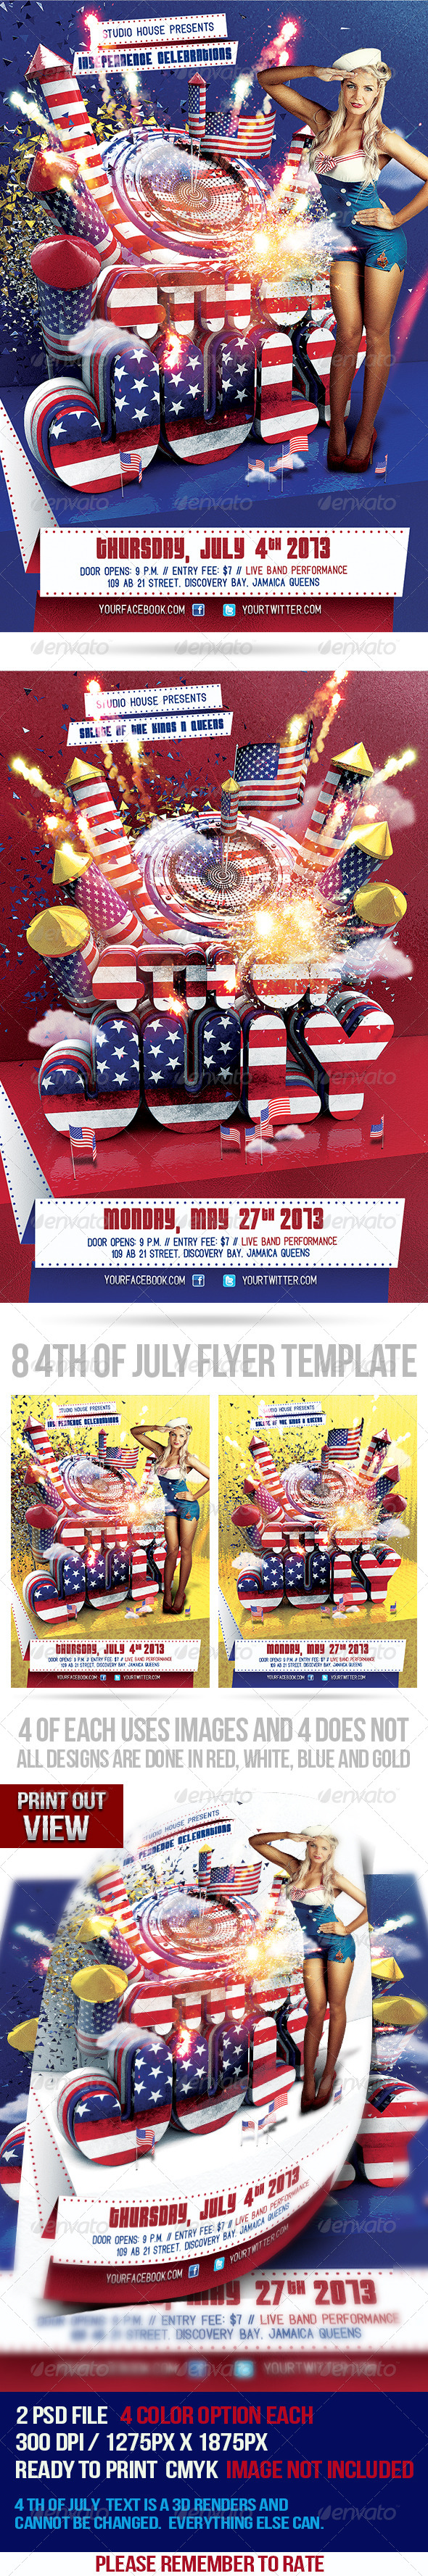 GraphicRiver 4th of July Party Flyer 4858287